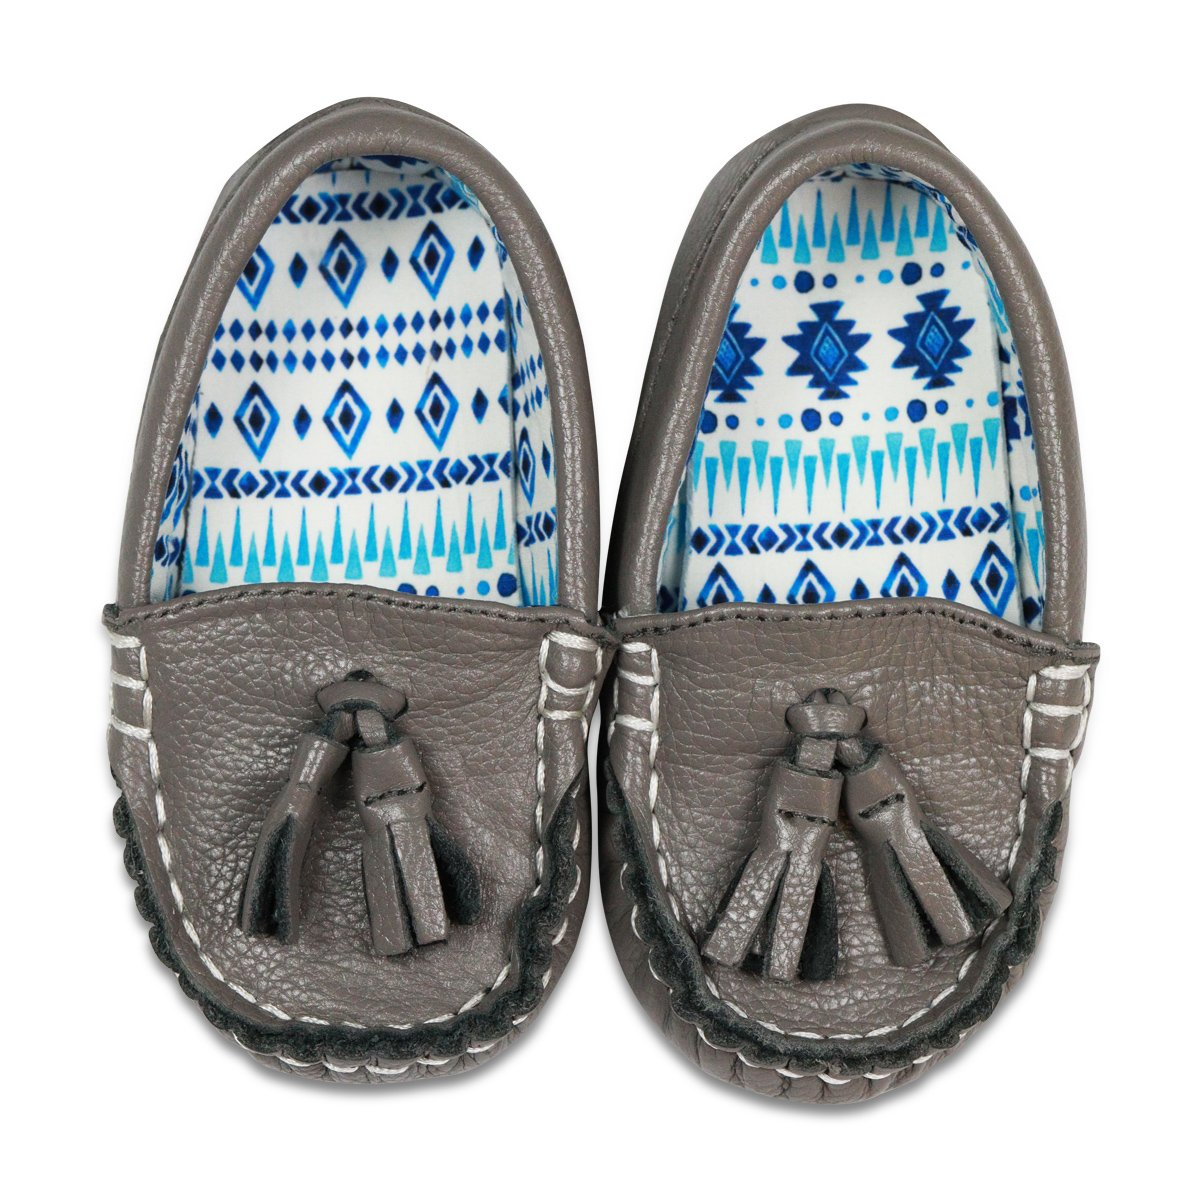 Boy and Girl Baby Pattern Moccasins 701822963947 Little Monkey Fashion Unisex Toddler Leather Shoes Size 9 Gray-Fiti